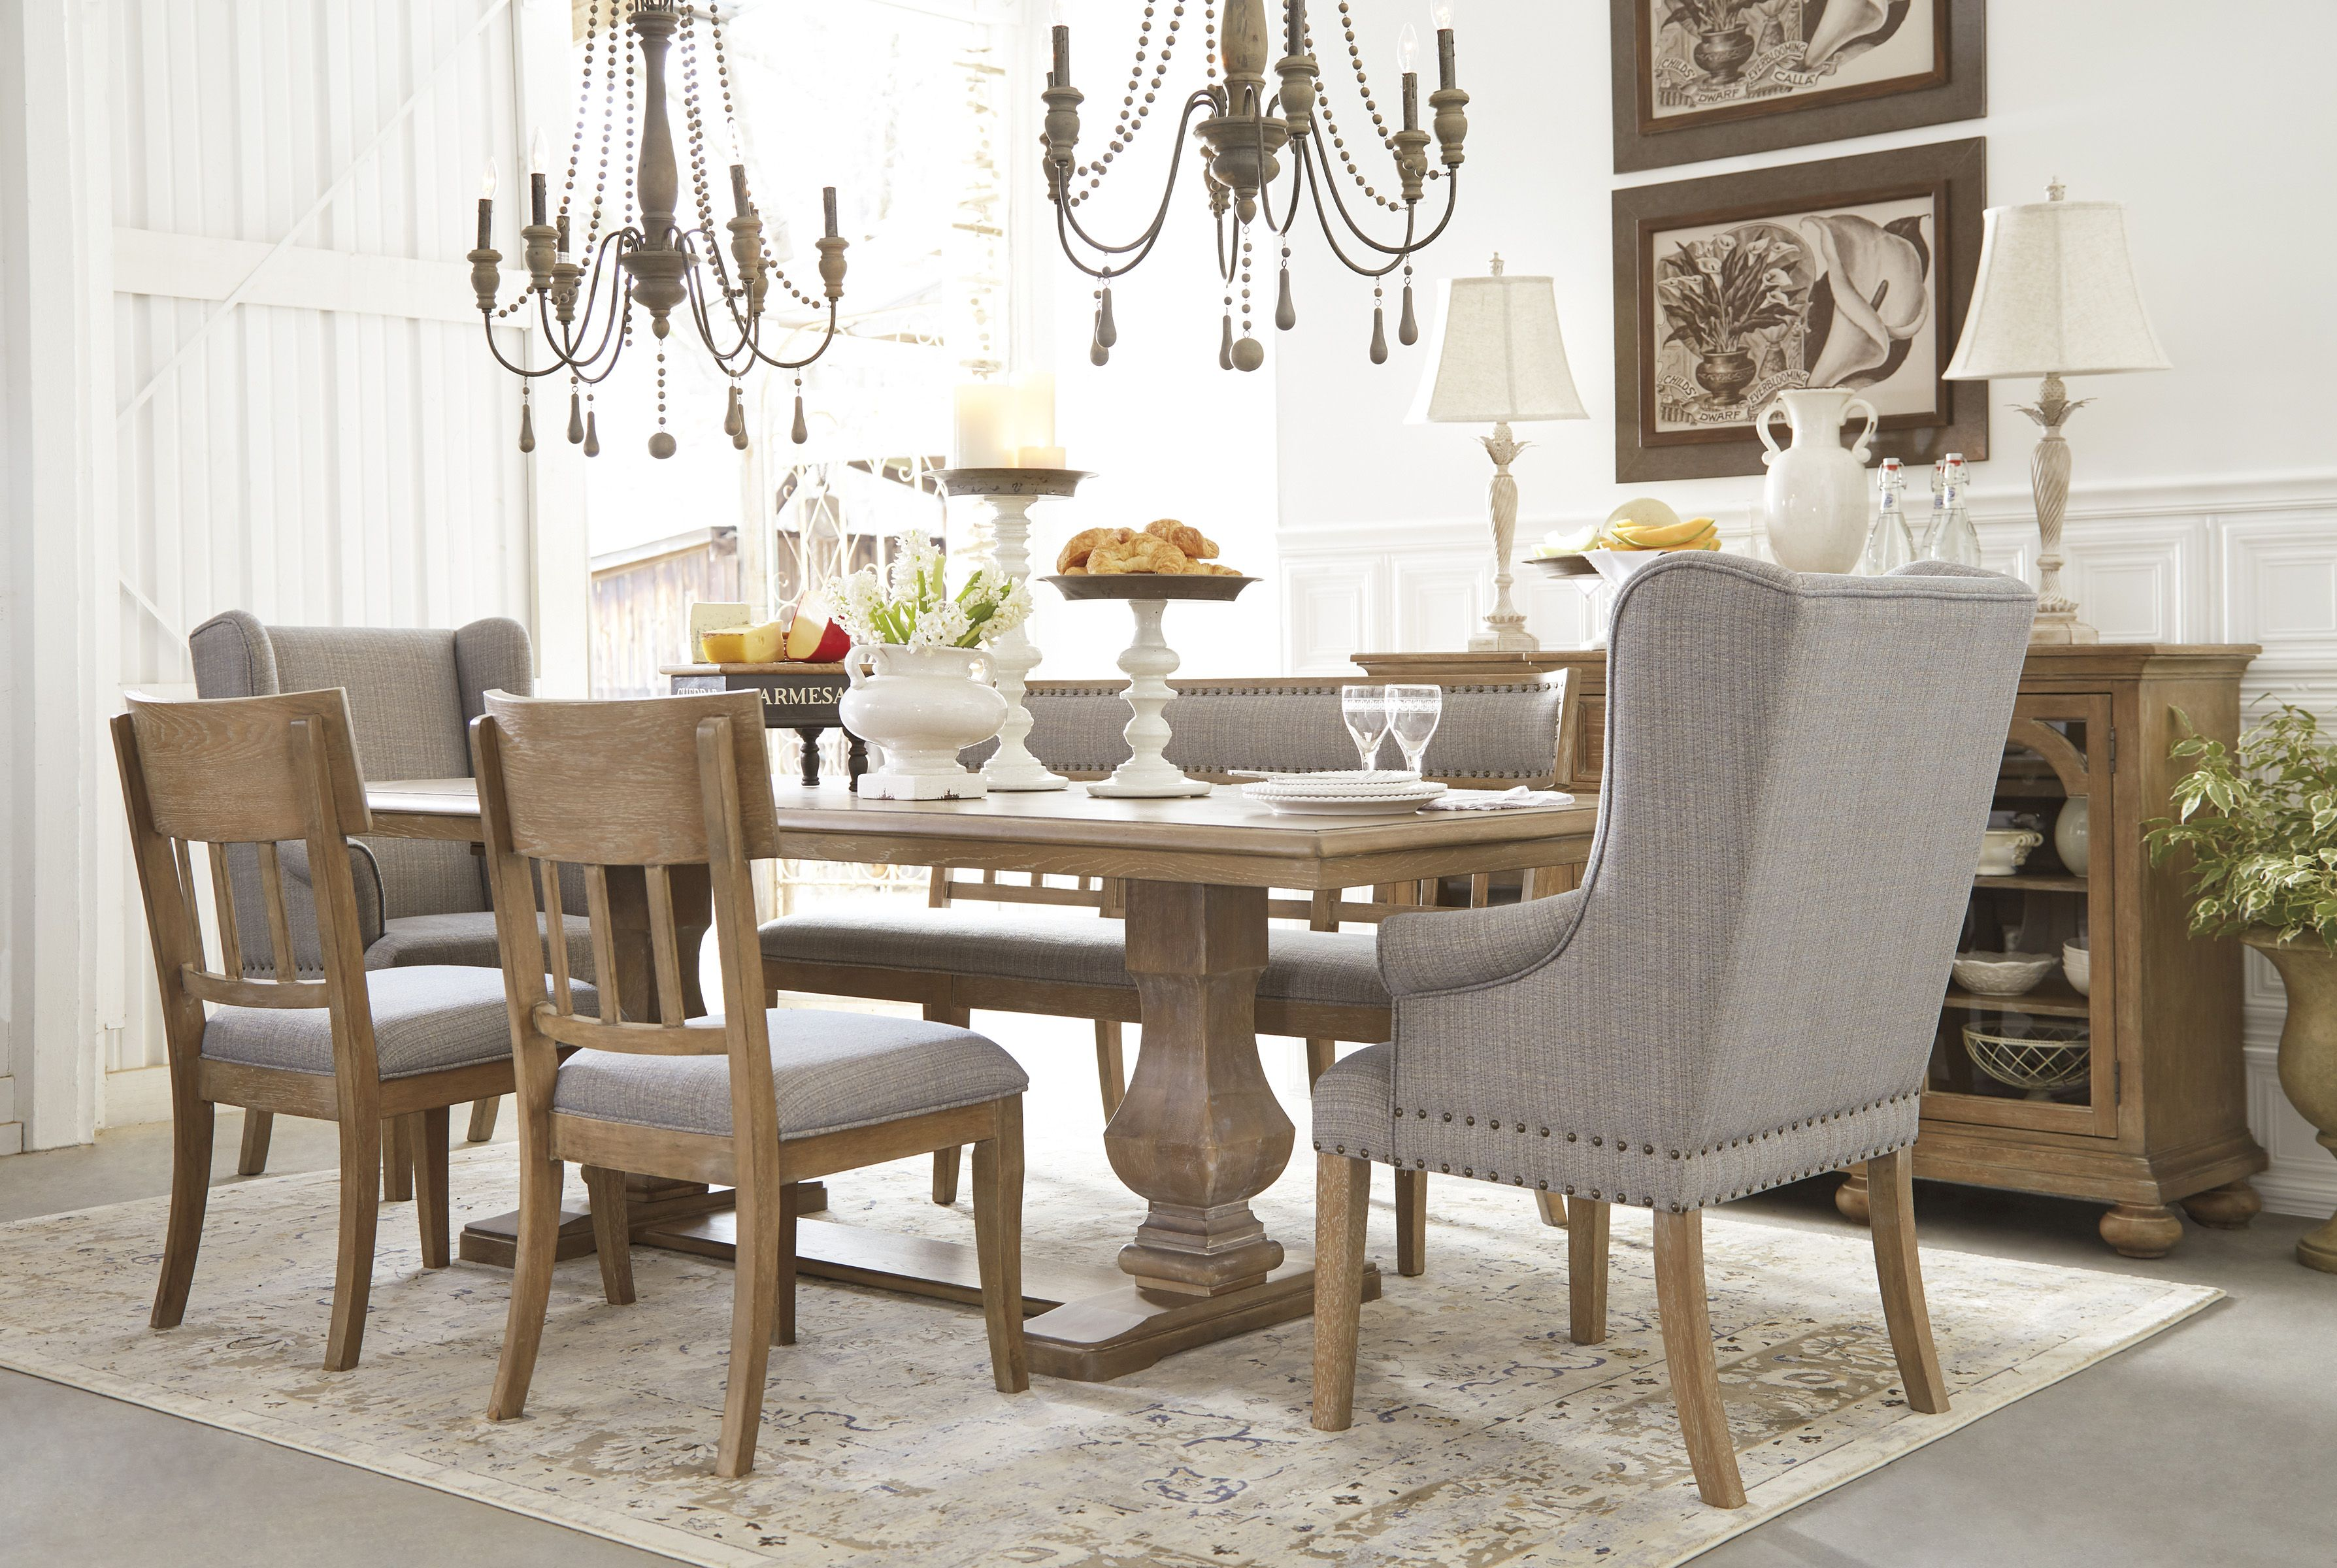 Phenomenal Ollesburg 7 Piece Dining Room In 2019 Dining Room Chairs Onthecornerstone Fun Painted Chair Ideas Images Onthecornerstoneorg